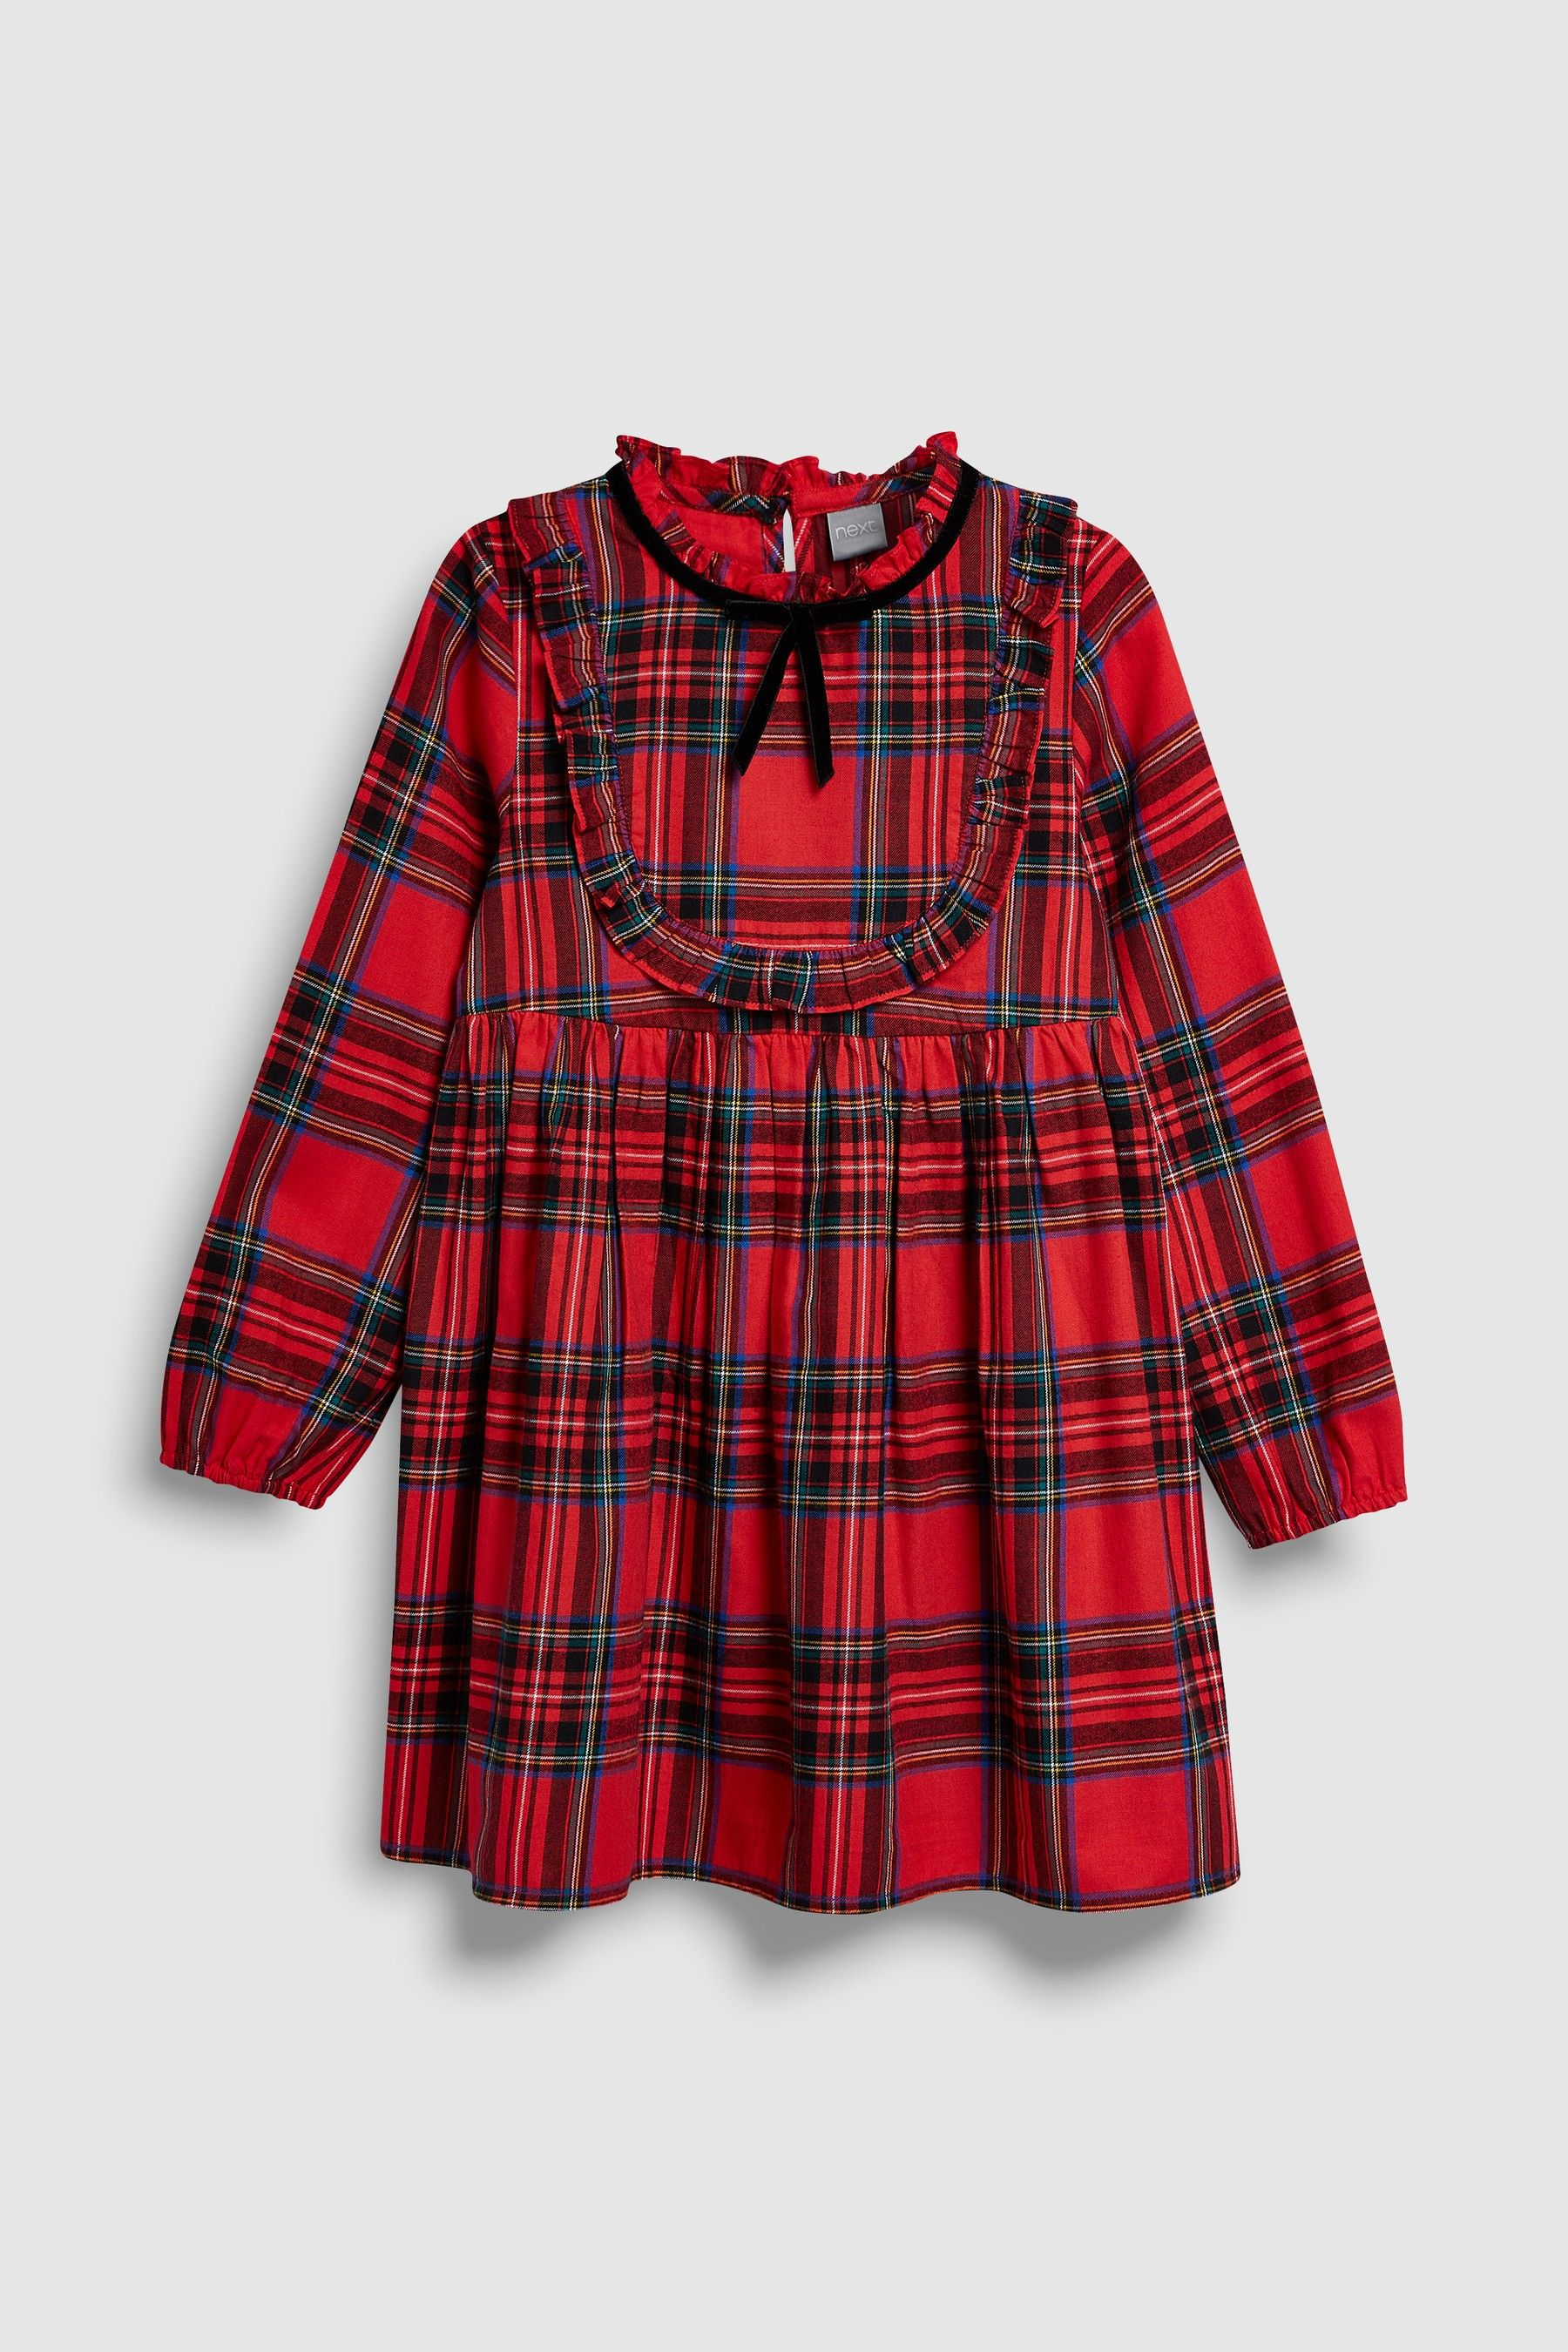 9cf44e1ffc1b Buy Red Girls Tartan Check Dress (3-16yrs) from the Next UK online ...